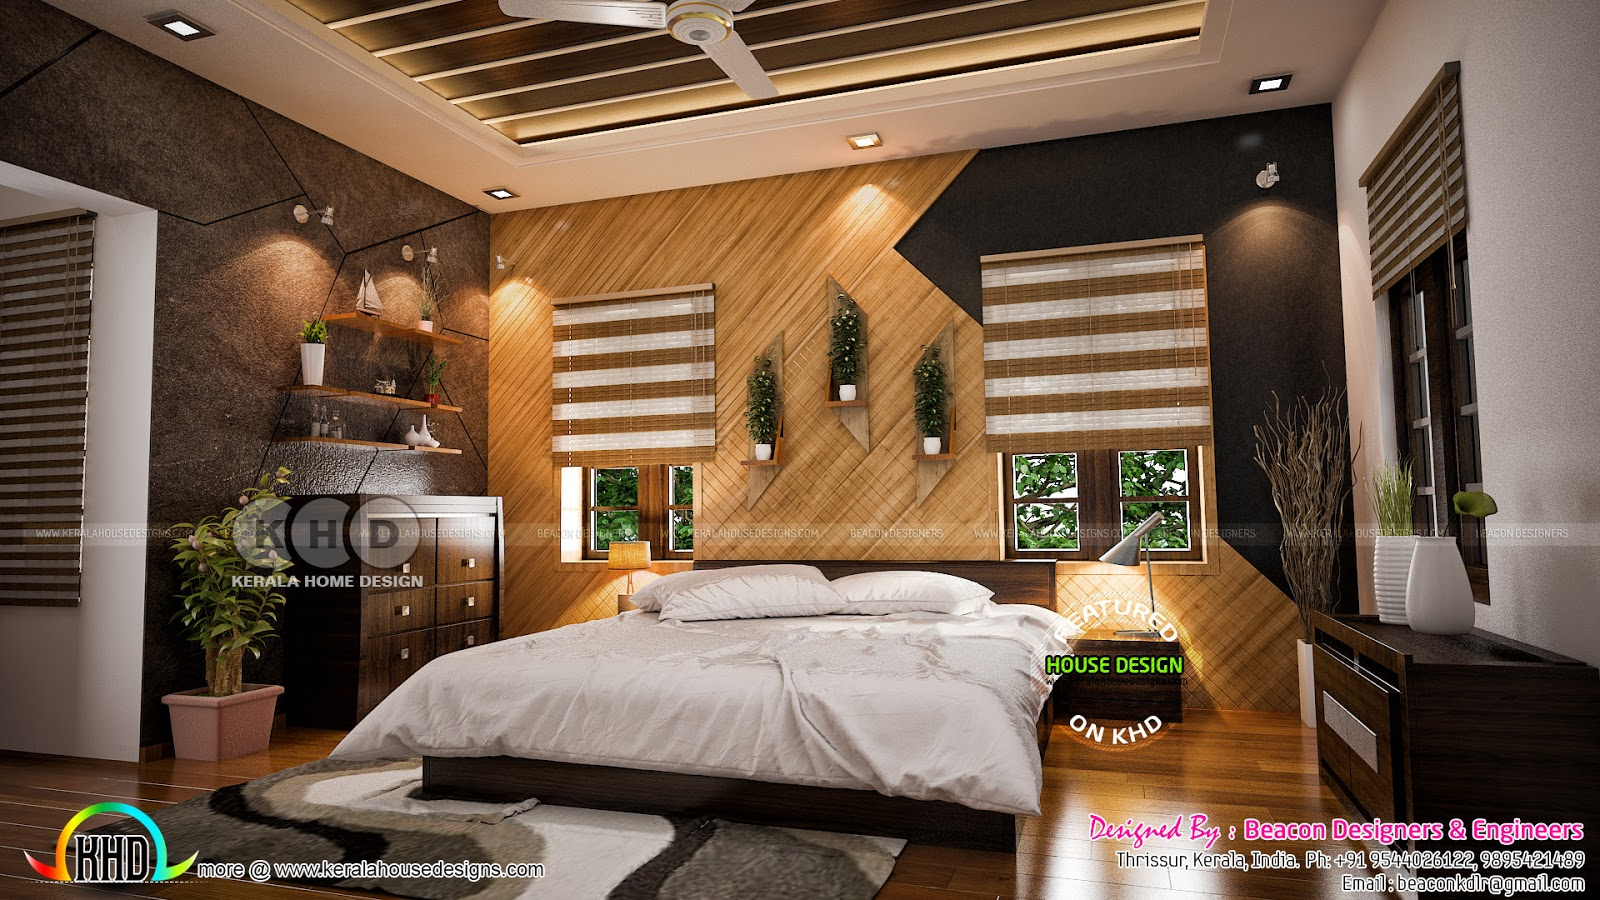 Stunning Interior Design Ideas By Beacon Designers Kerala Home Design And Floor Plans 8000 Houses